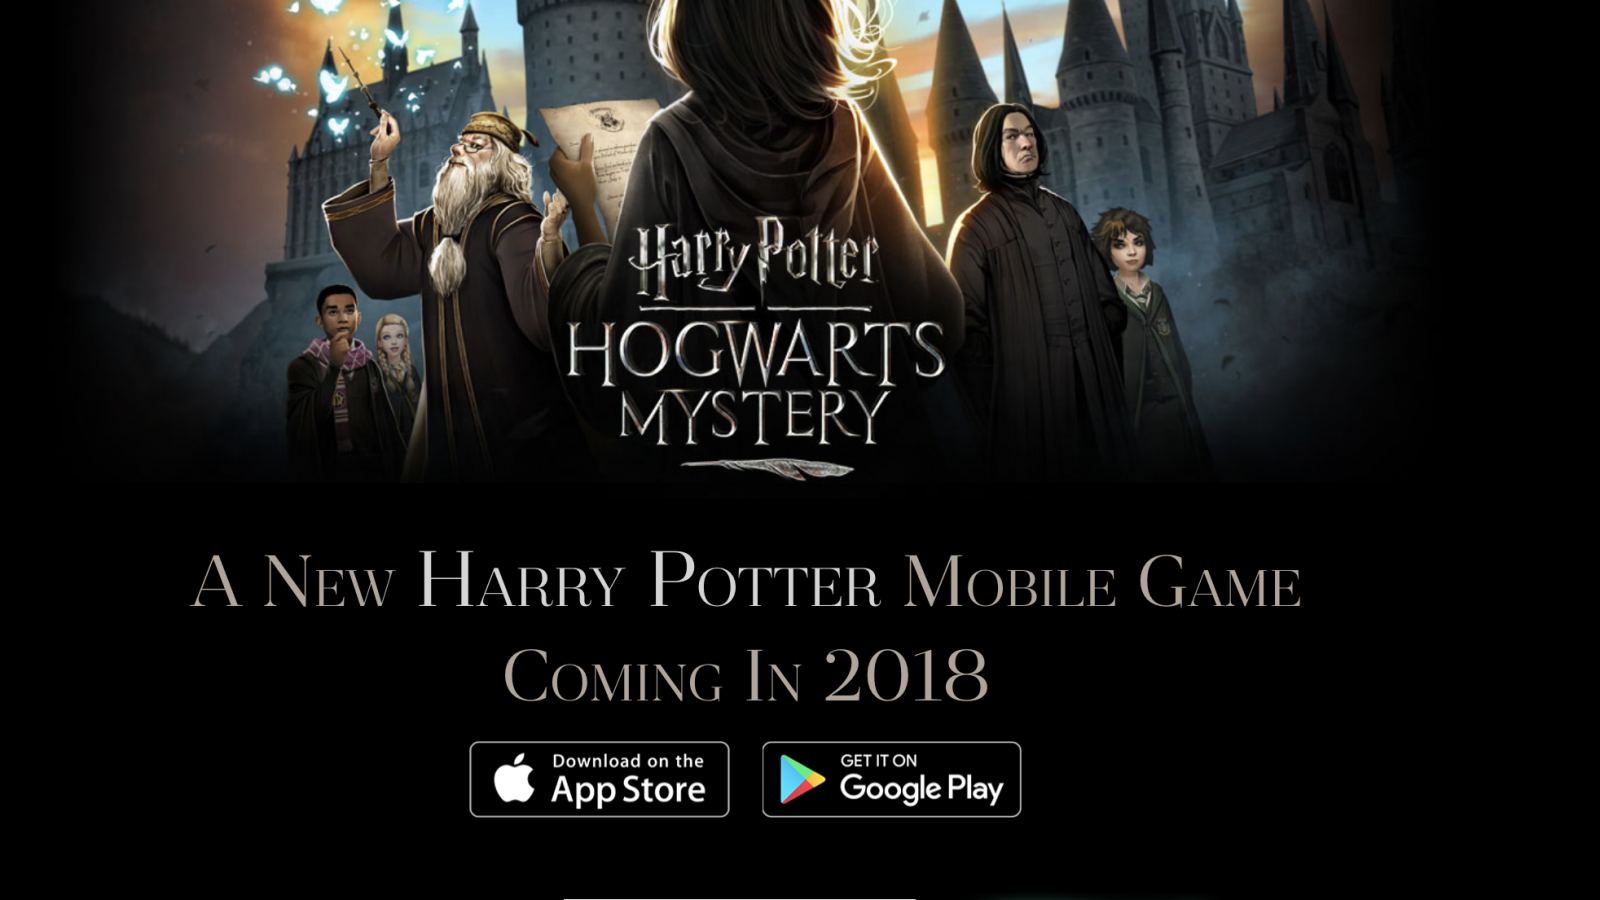 Harry Potter Hogwarts Mystery Gets A New Gameplay Trailer